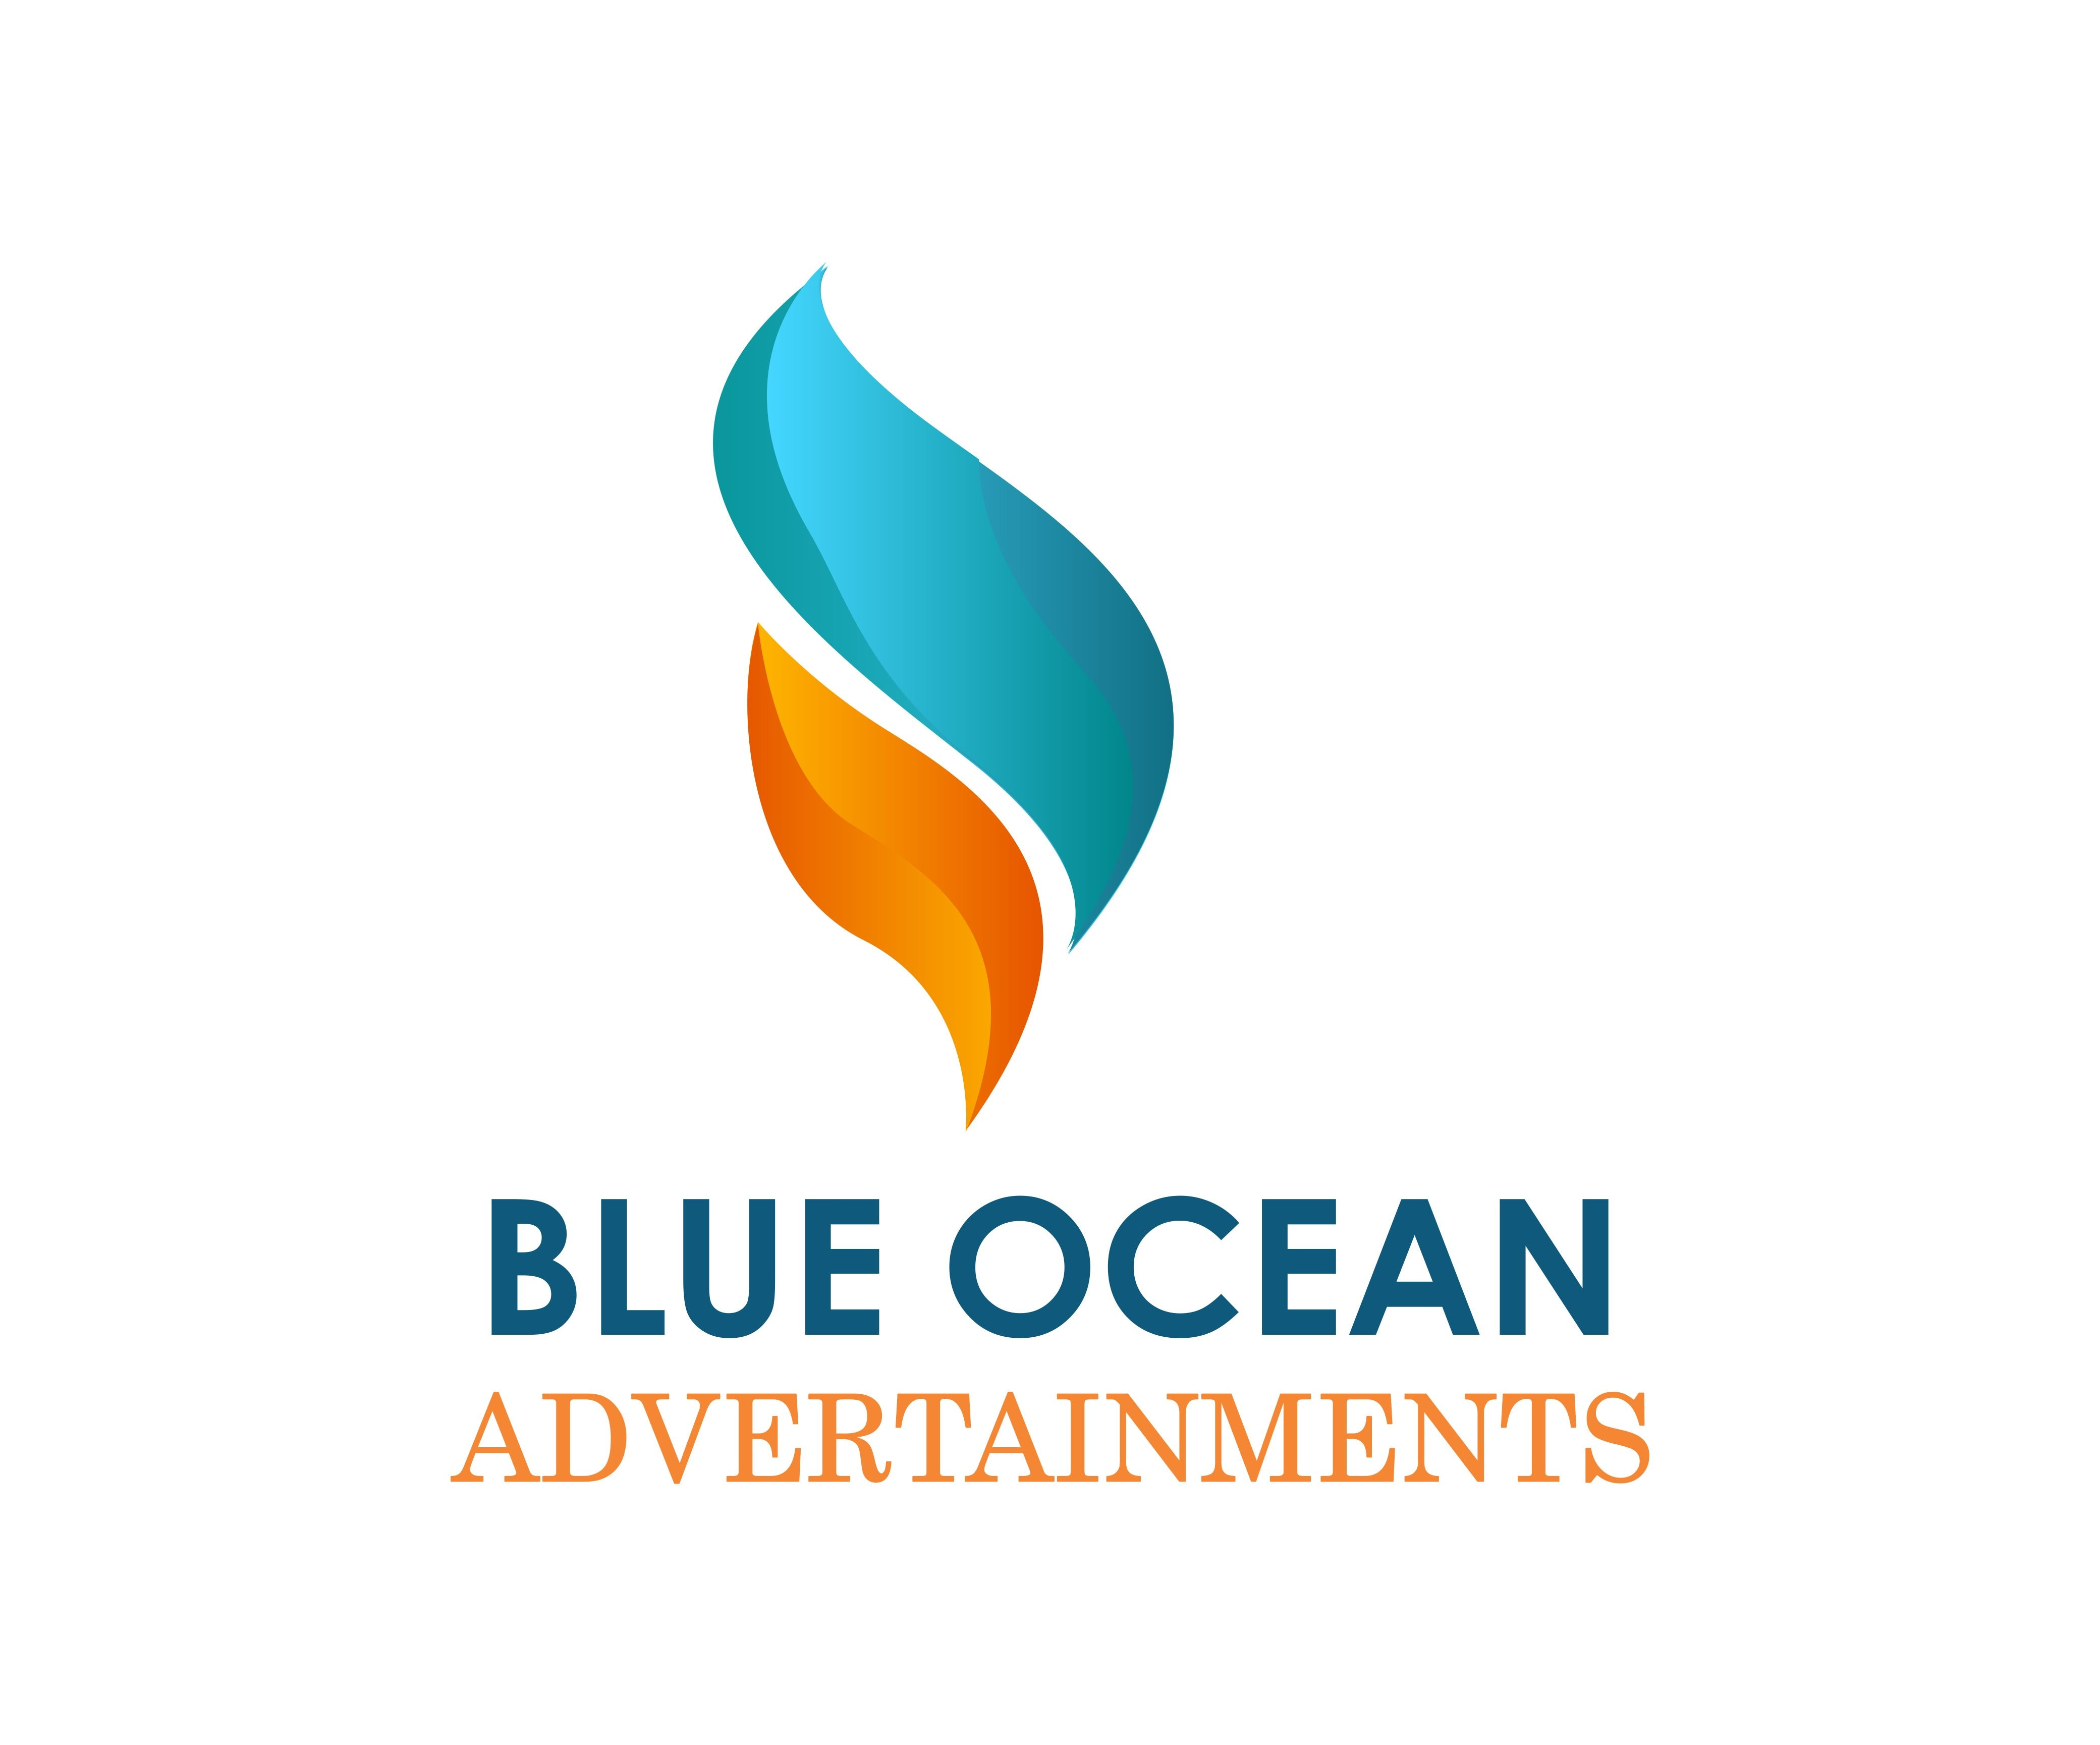 Blue Ocean Advertainments